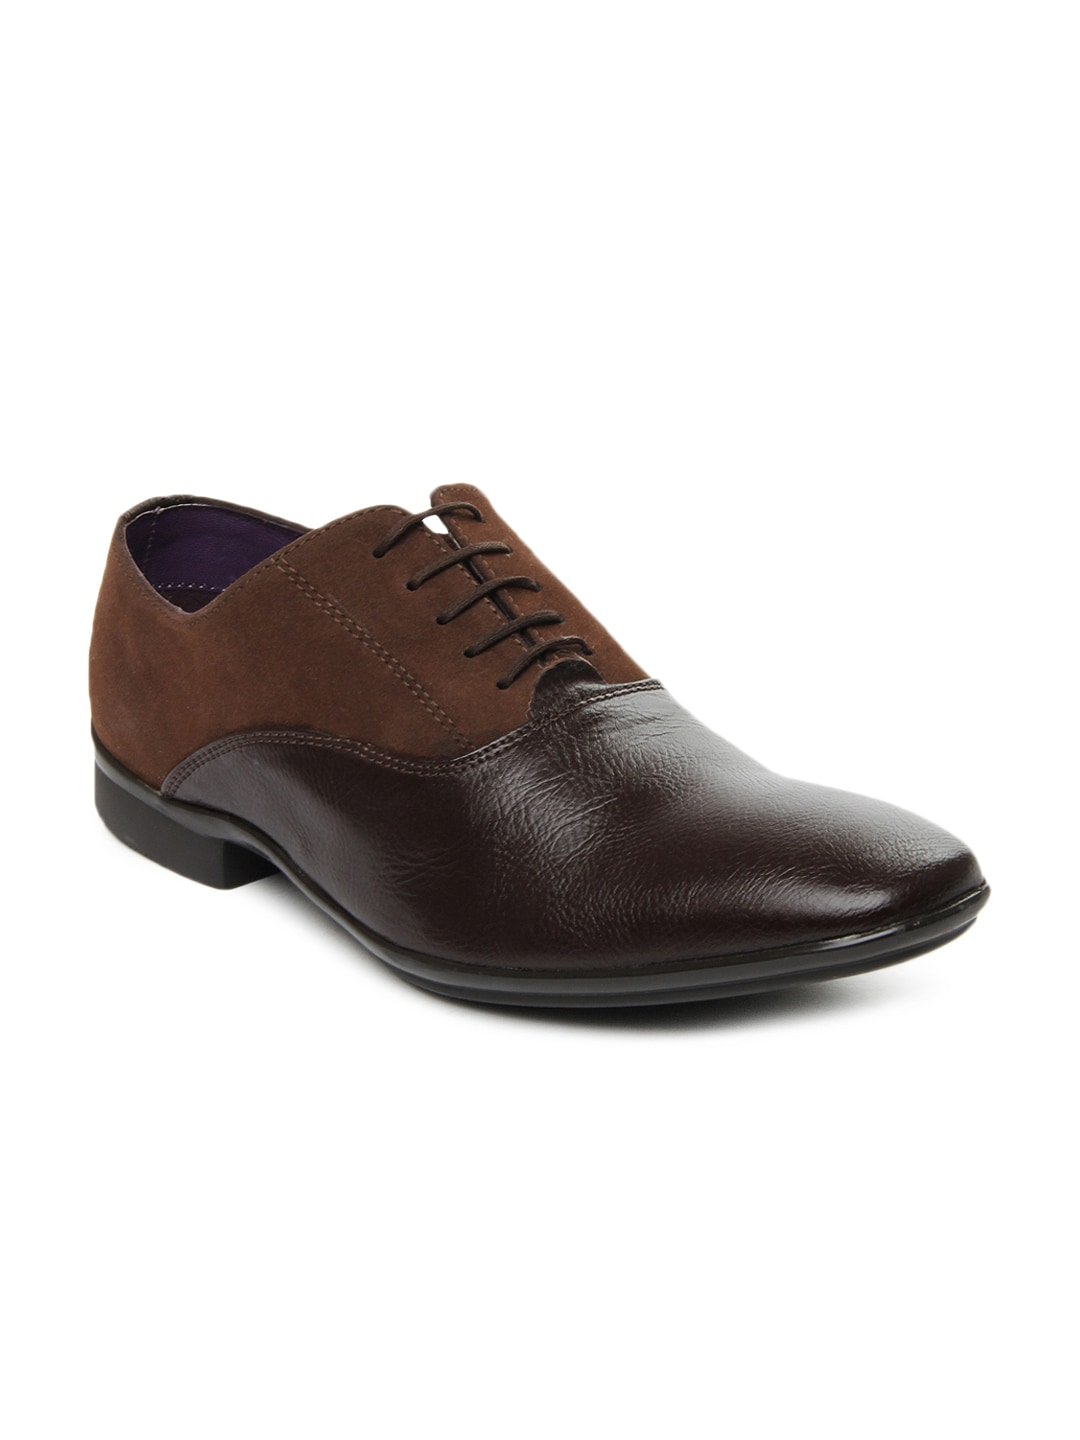 buy knotty derby brown semi formal shoes 633